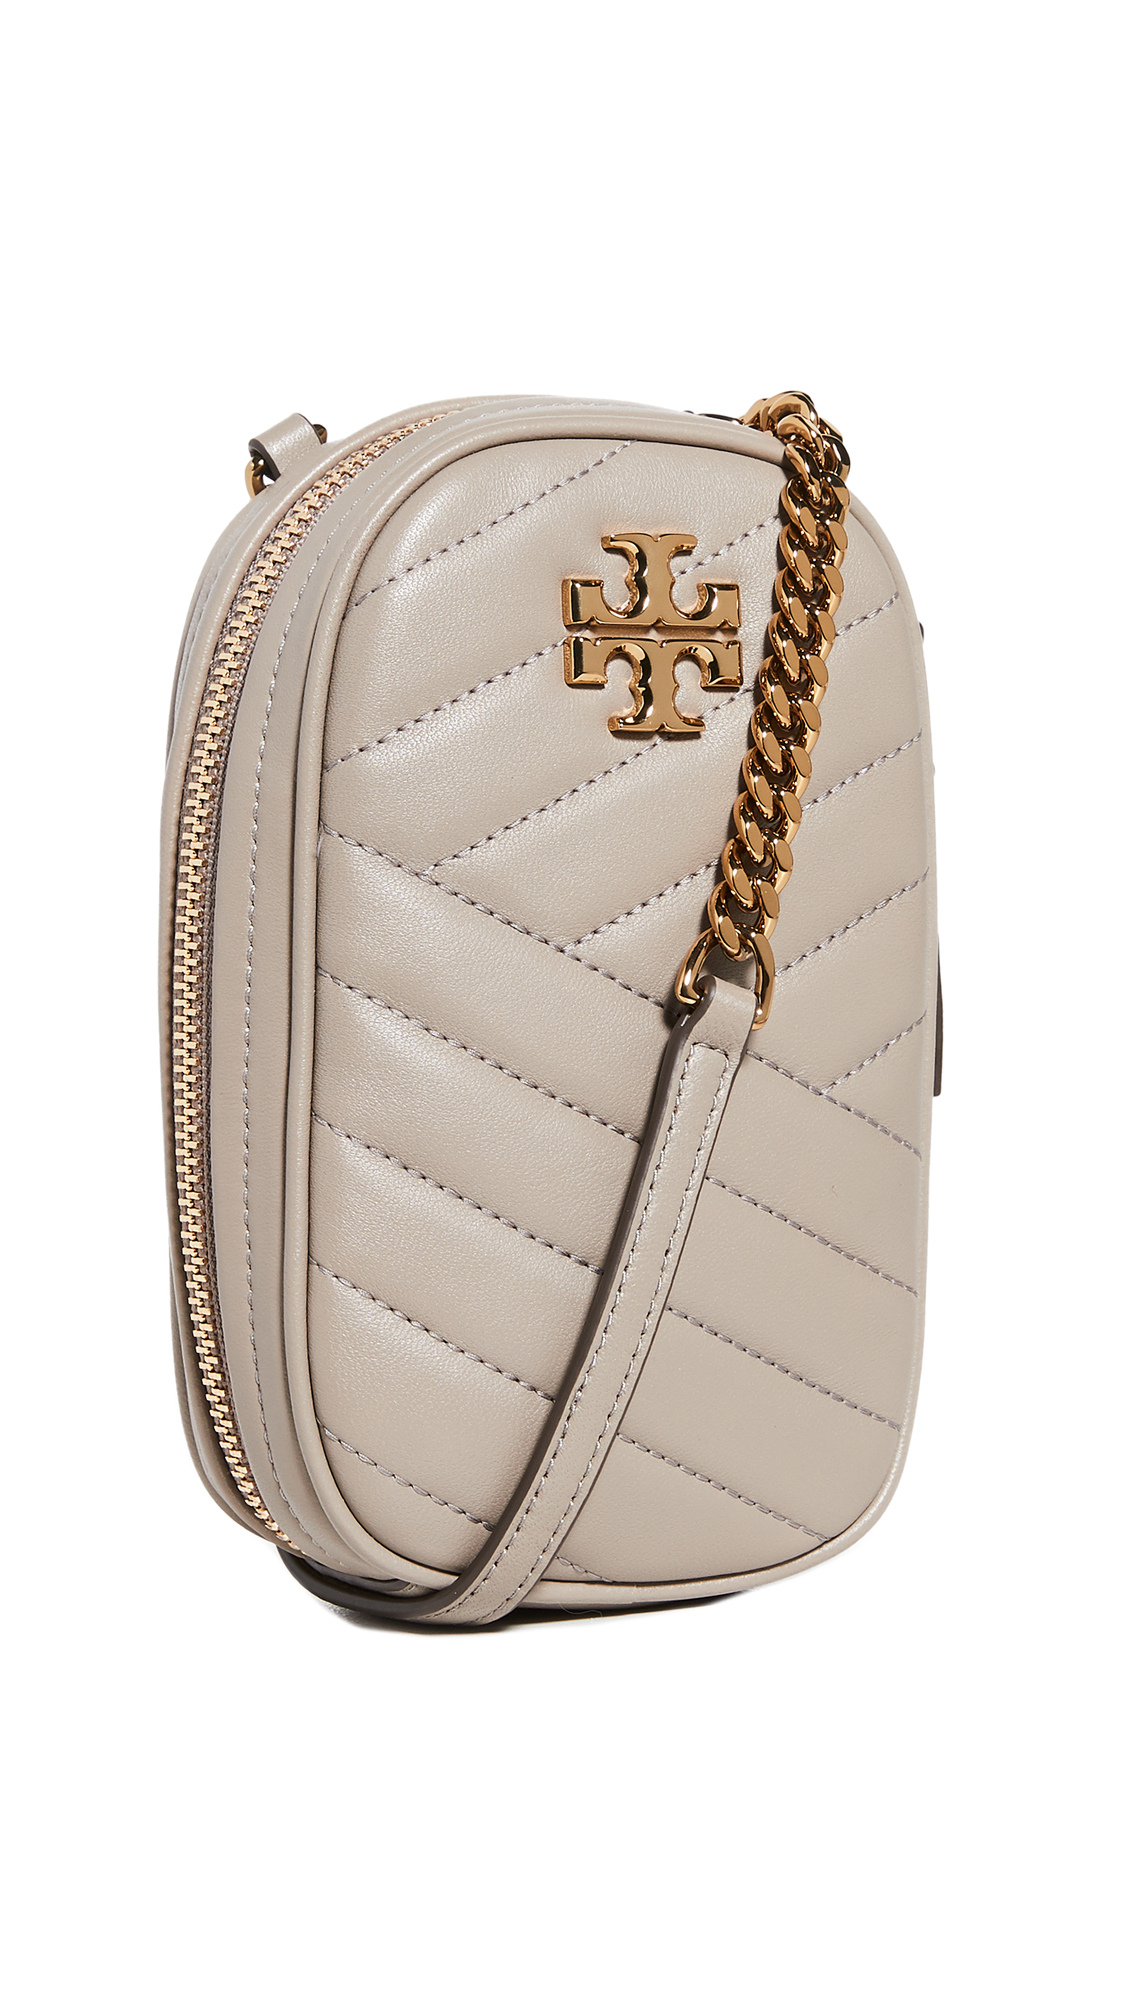 Tory Burch Kira Chevron Crossbody